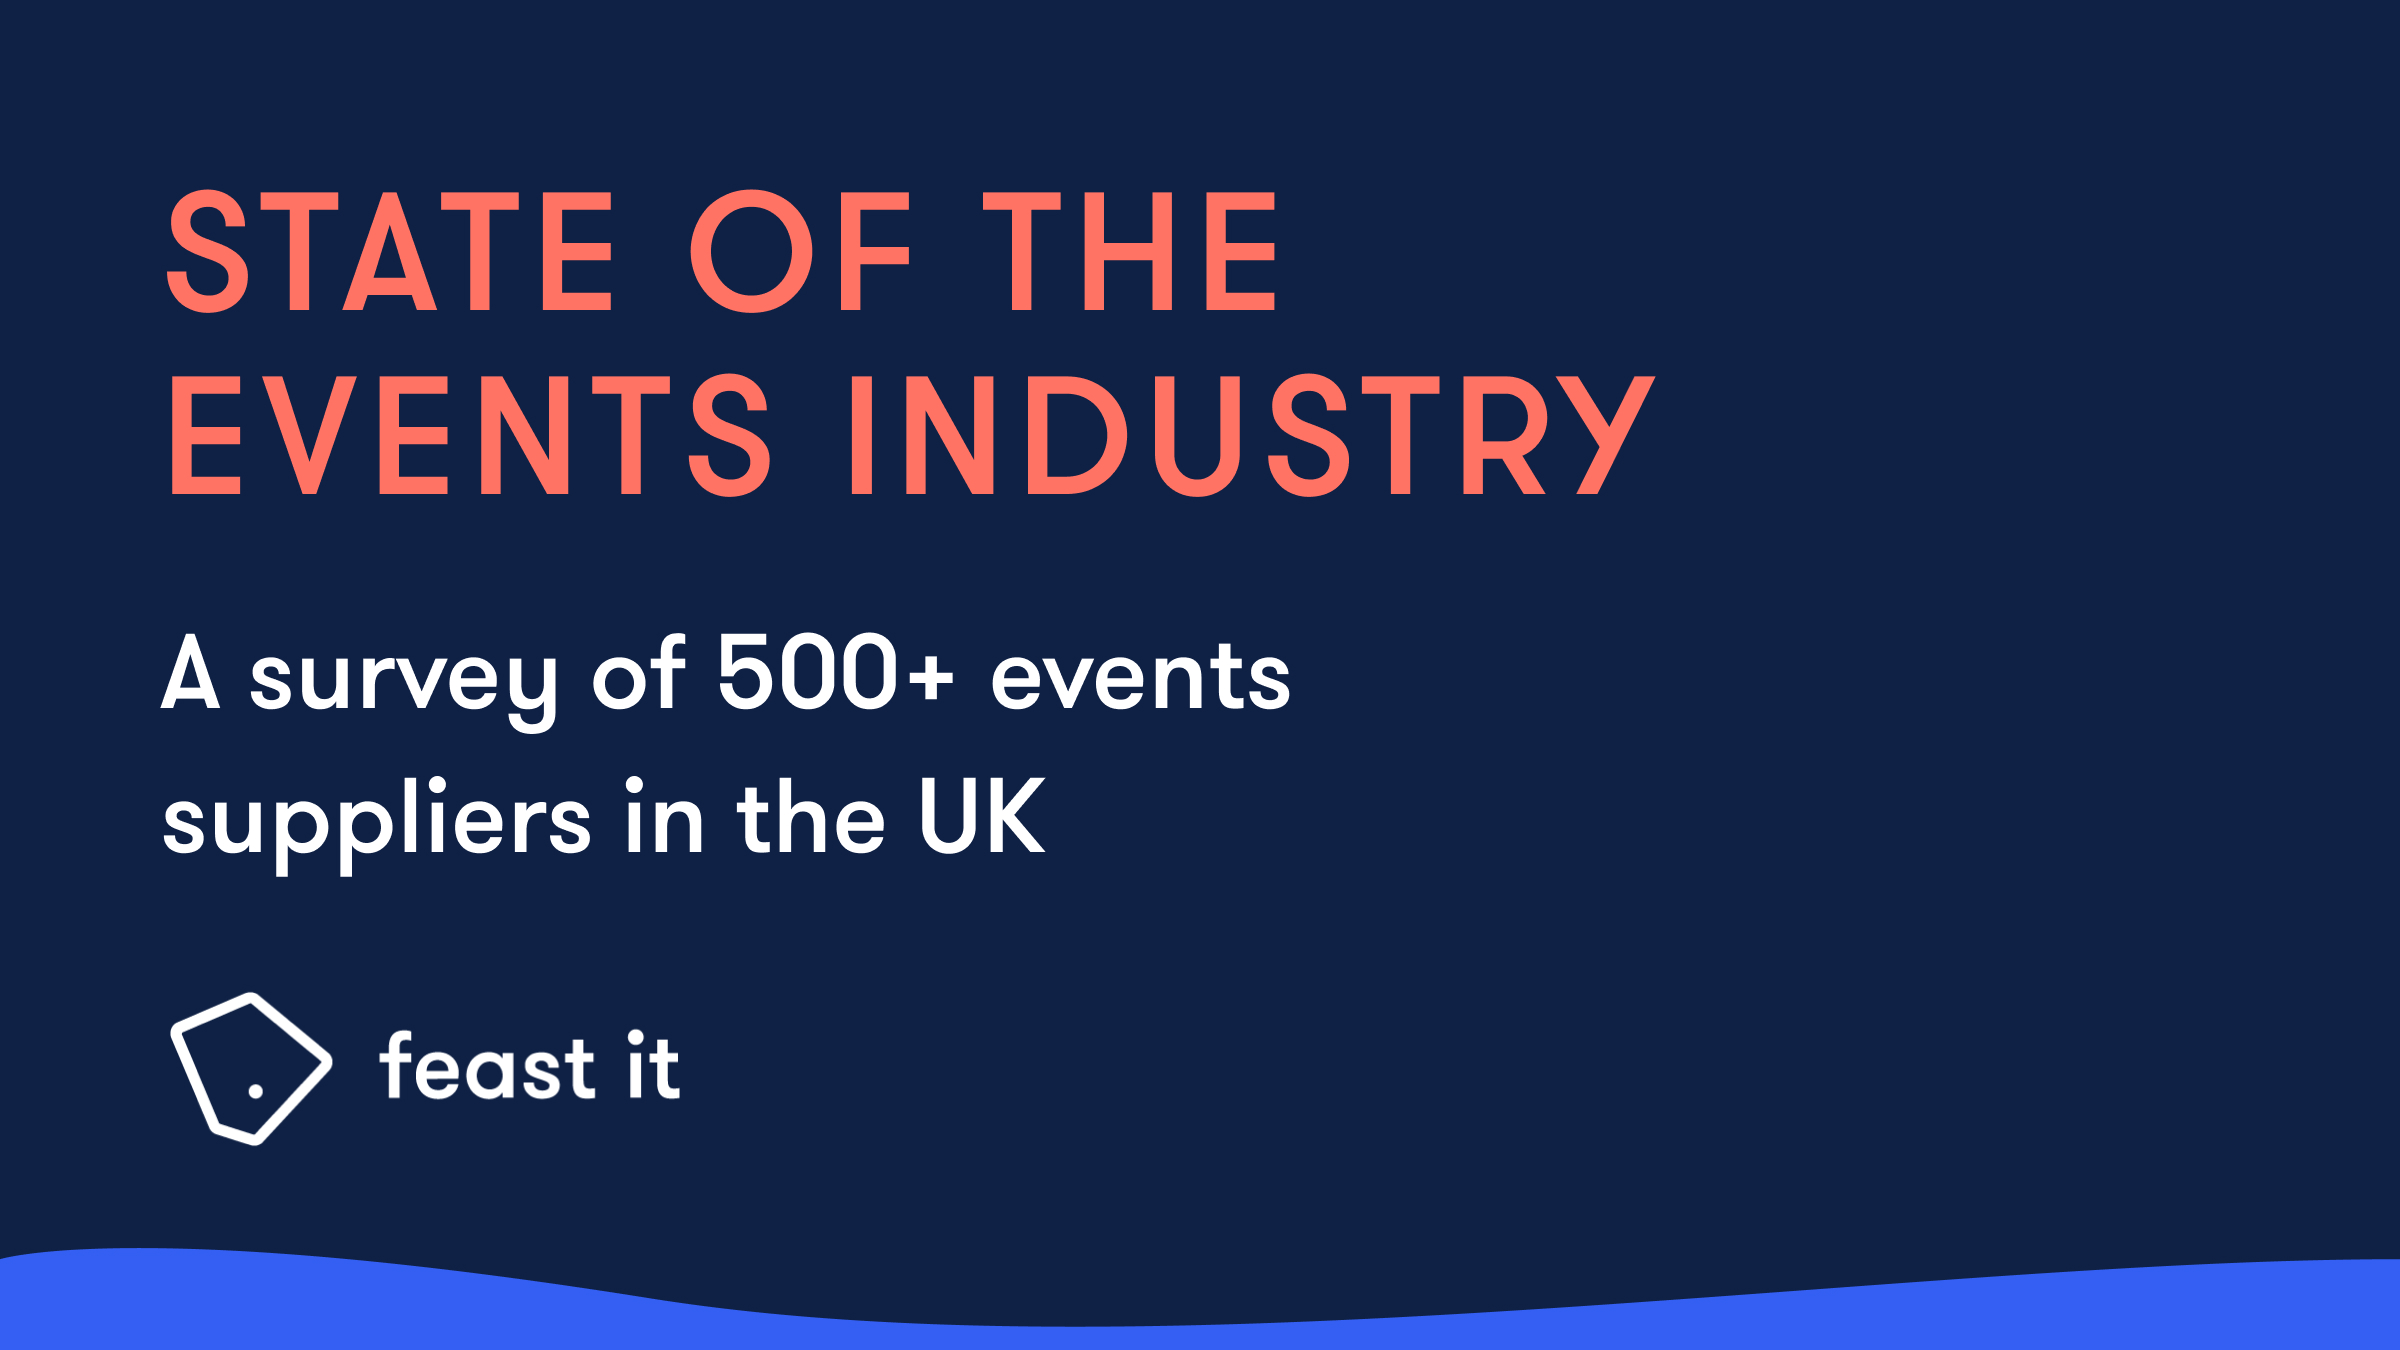 State of the events industry